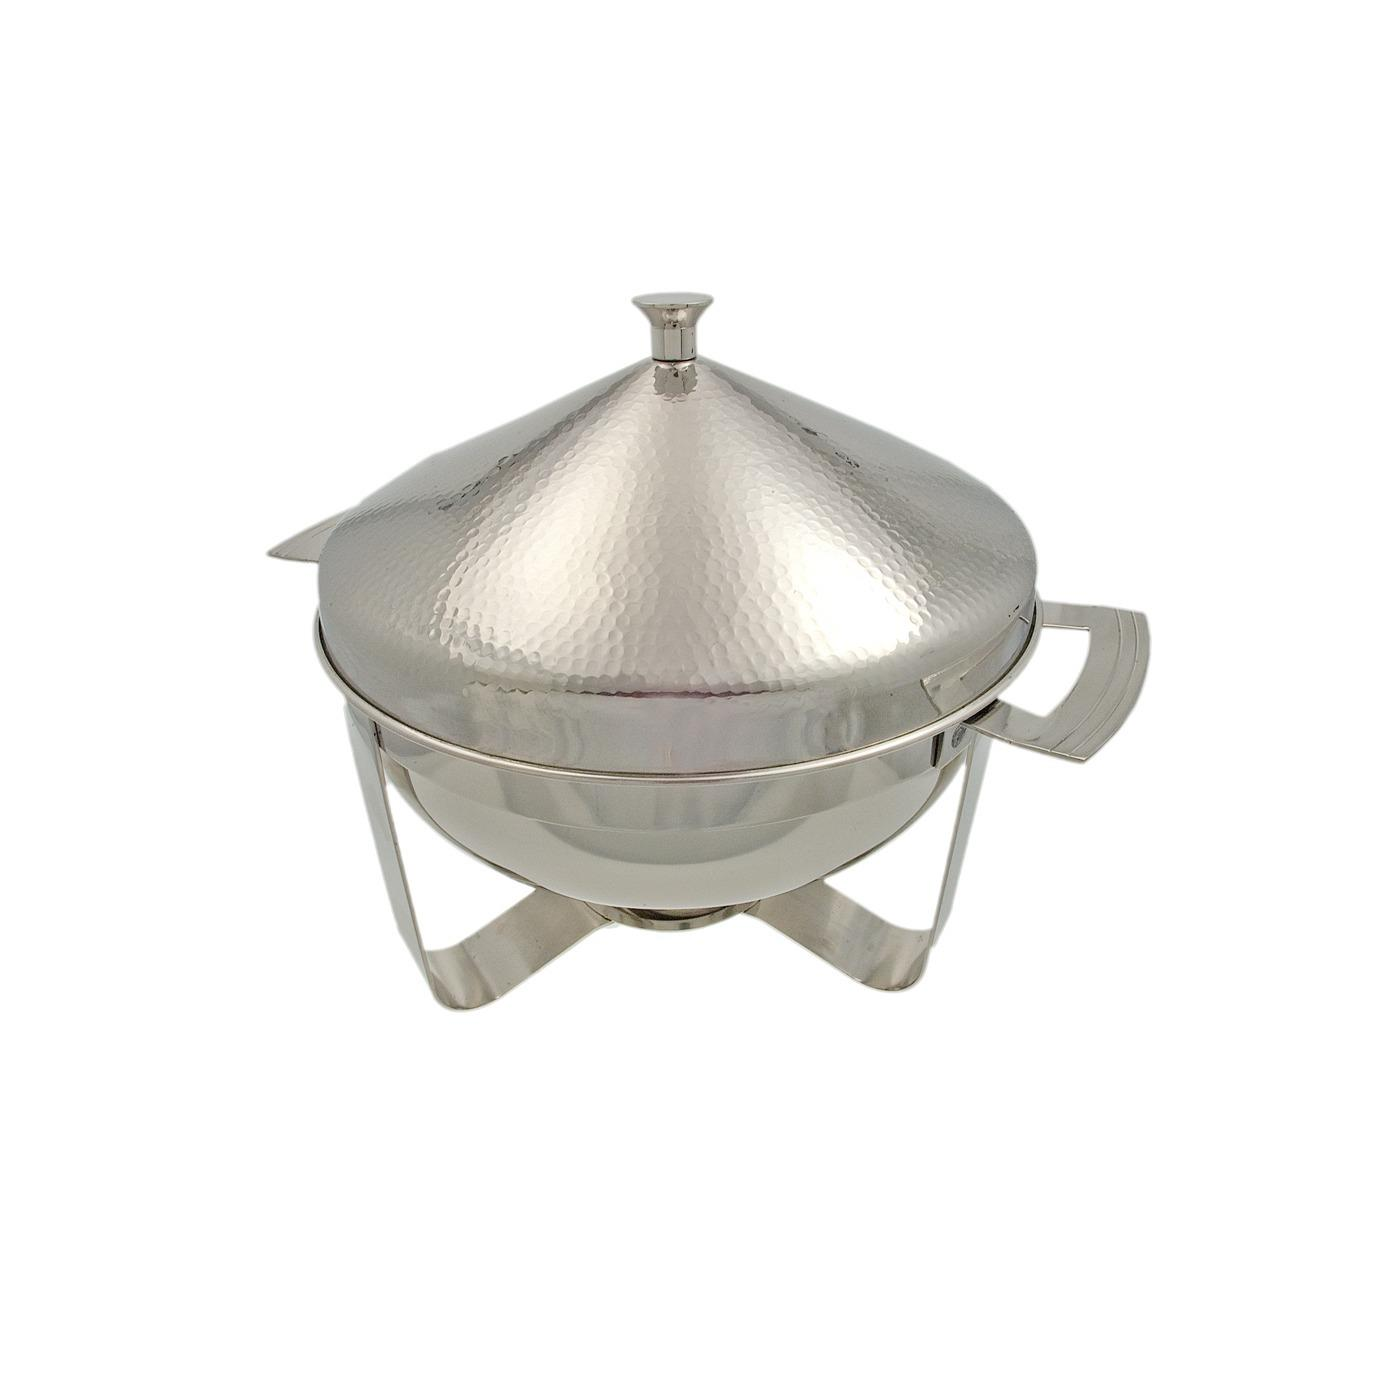 Stainless Steel Hammered Chafer - Round 8 Quart